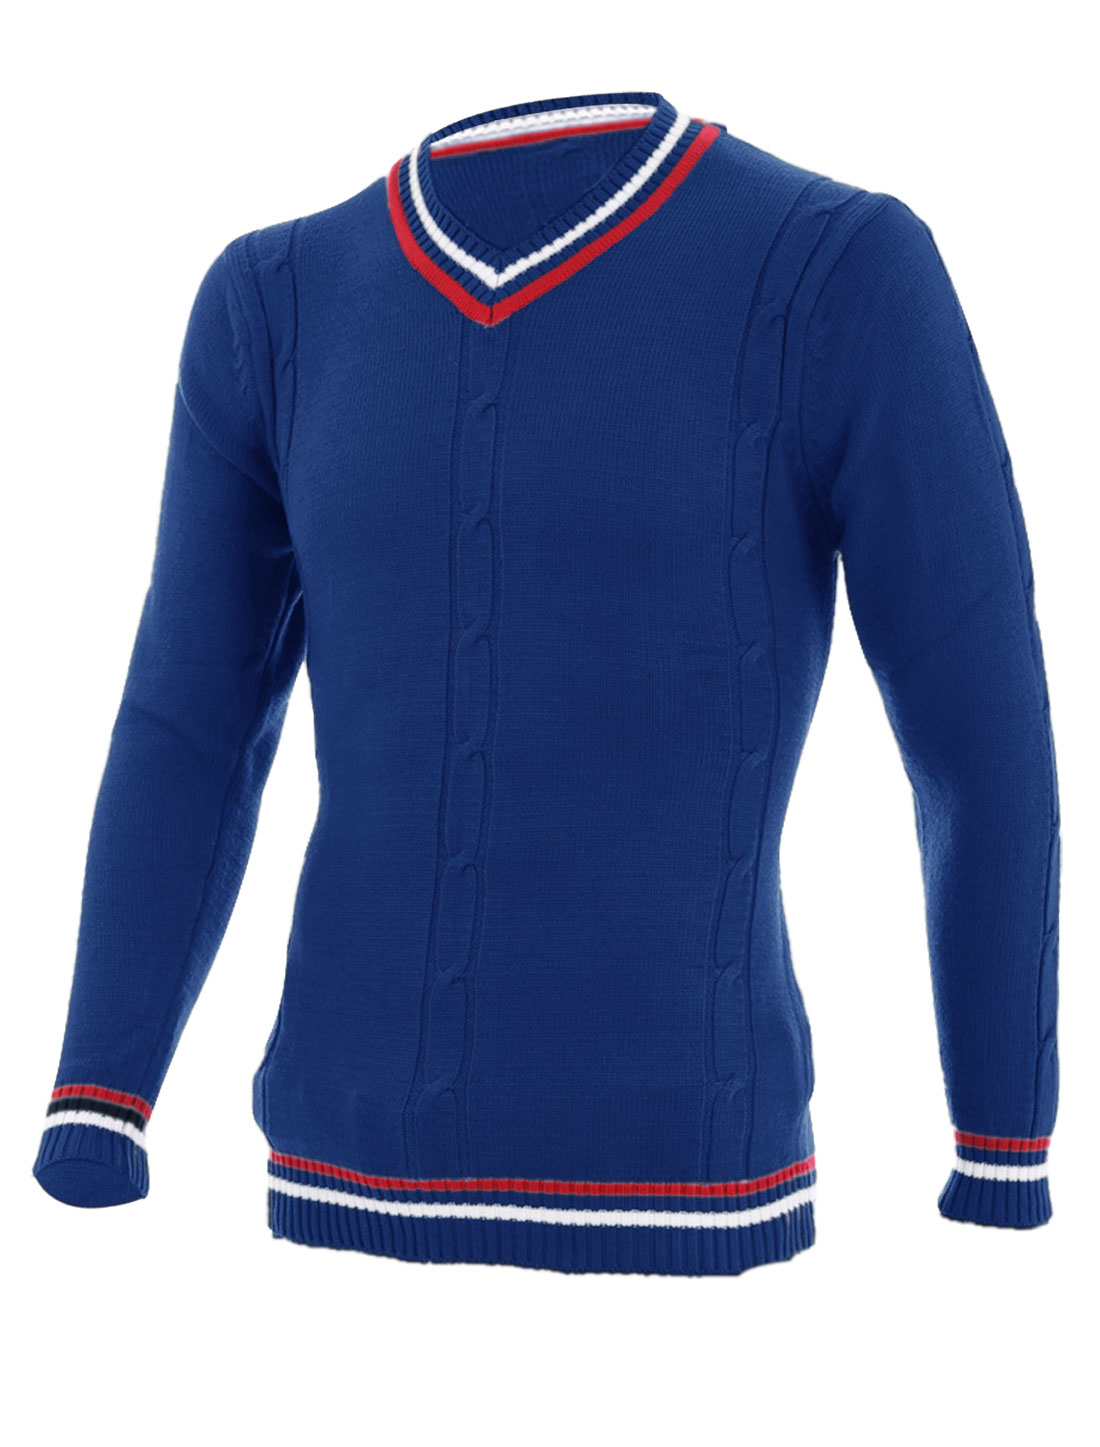 Fashion Contrast Color Stripes Detail Sweater for Men Blue S